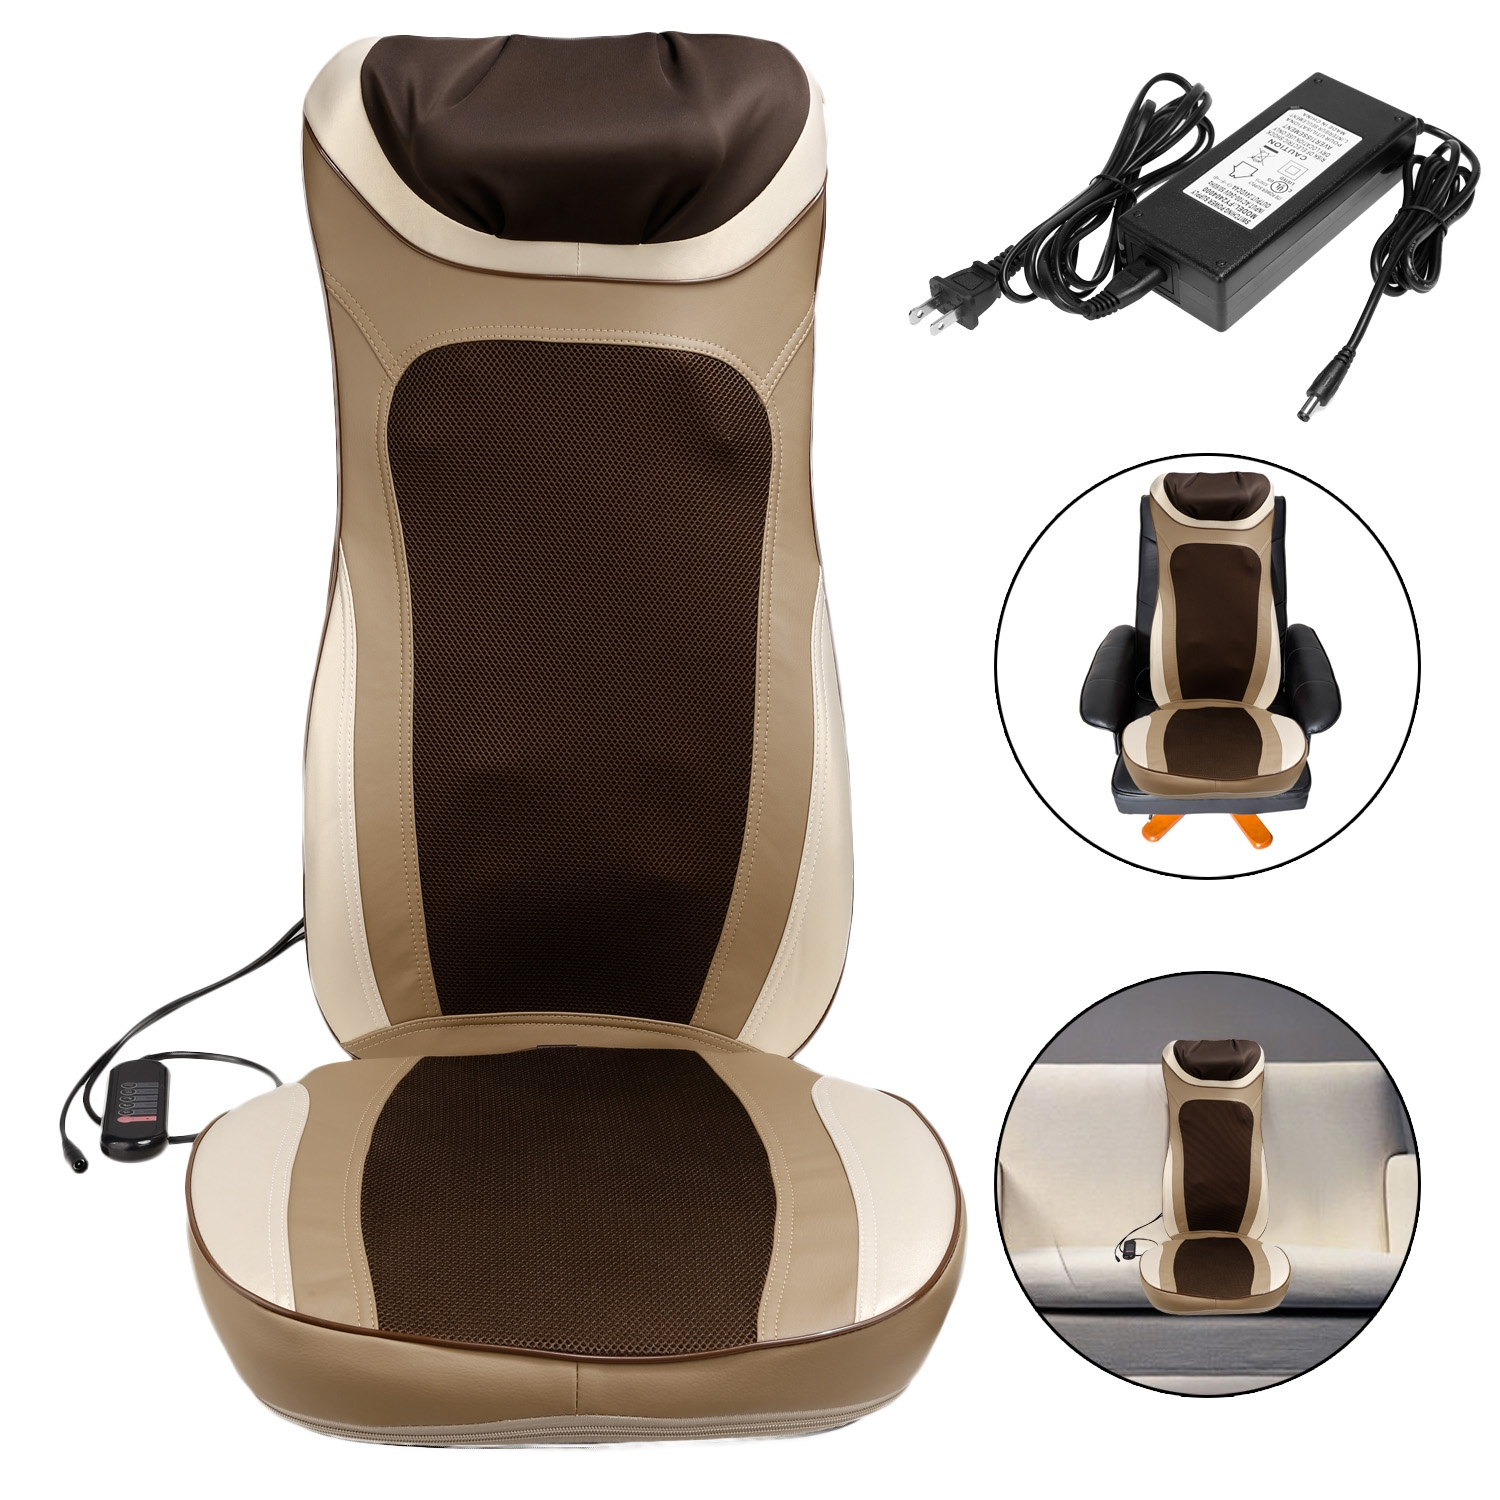 Shiatsu Massage Cushion Mat Seat with Heat For Chair Neck...